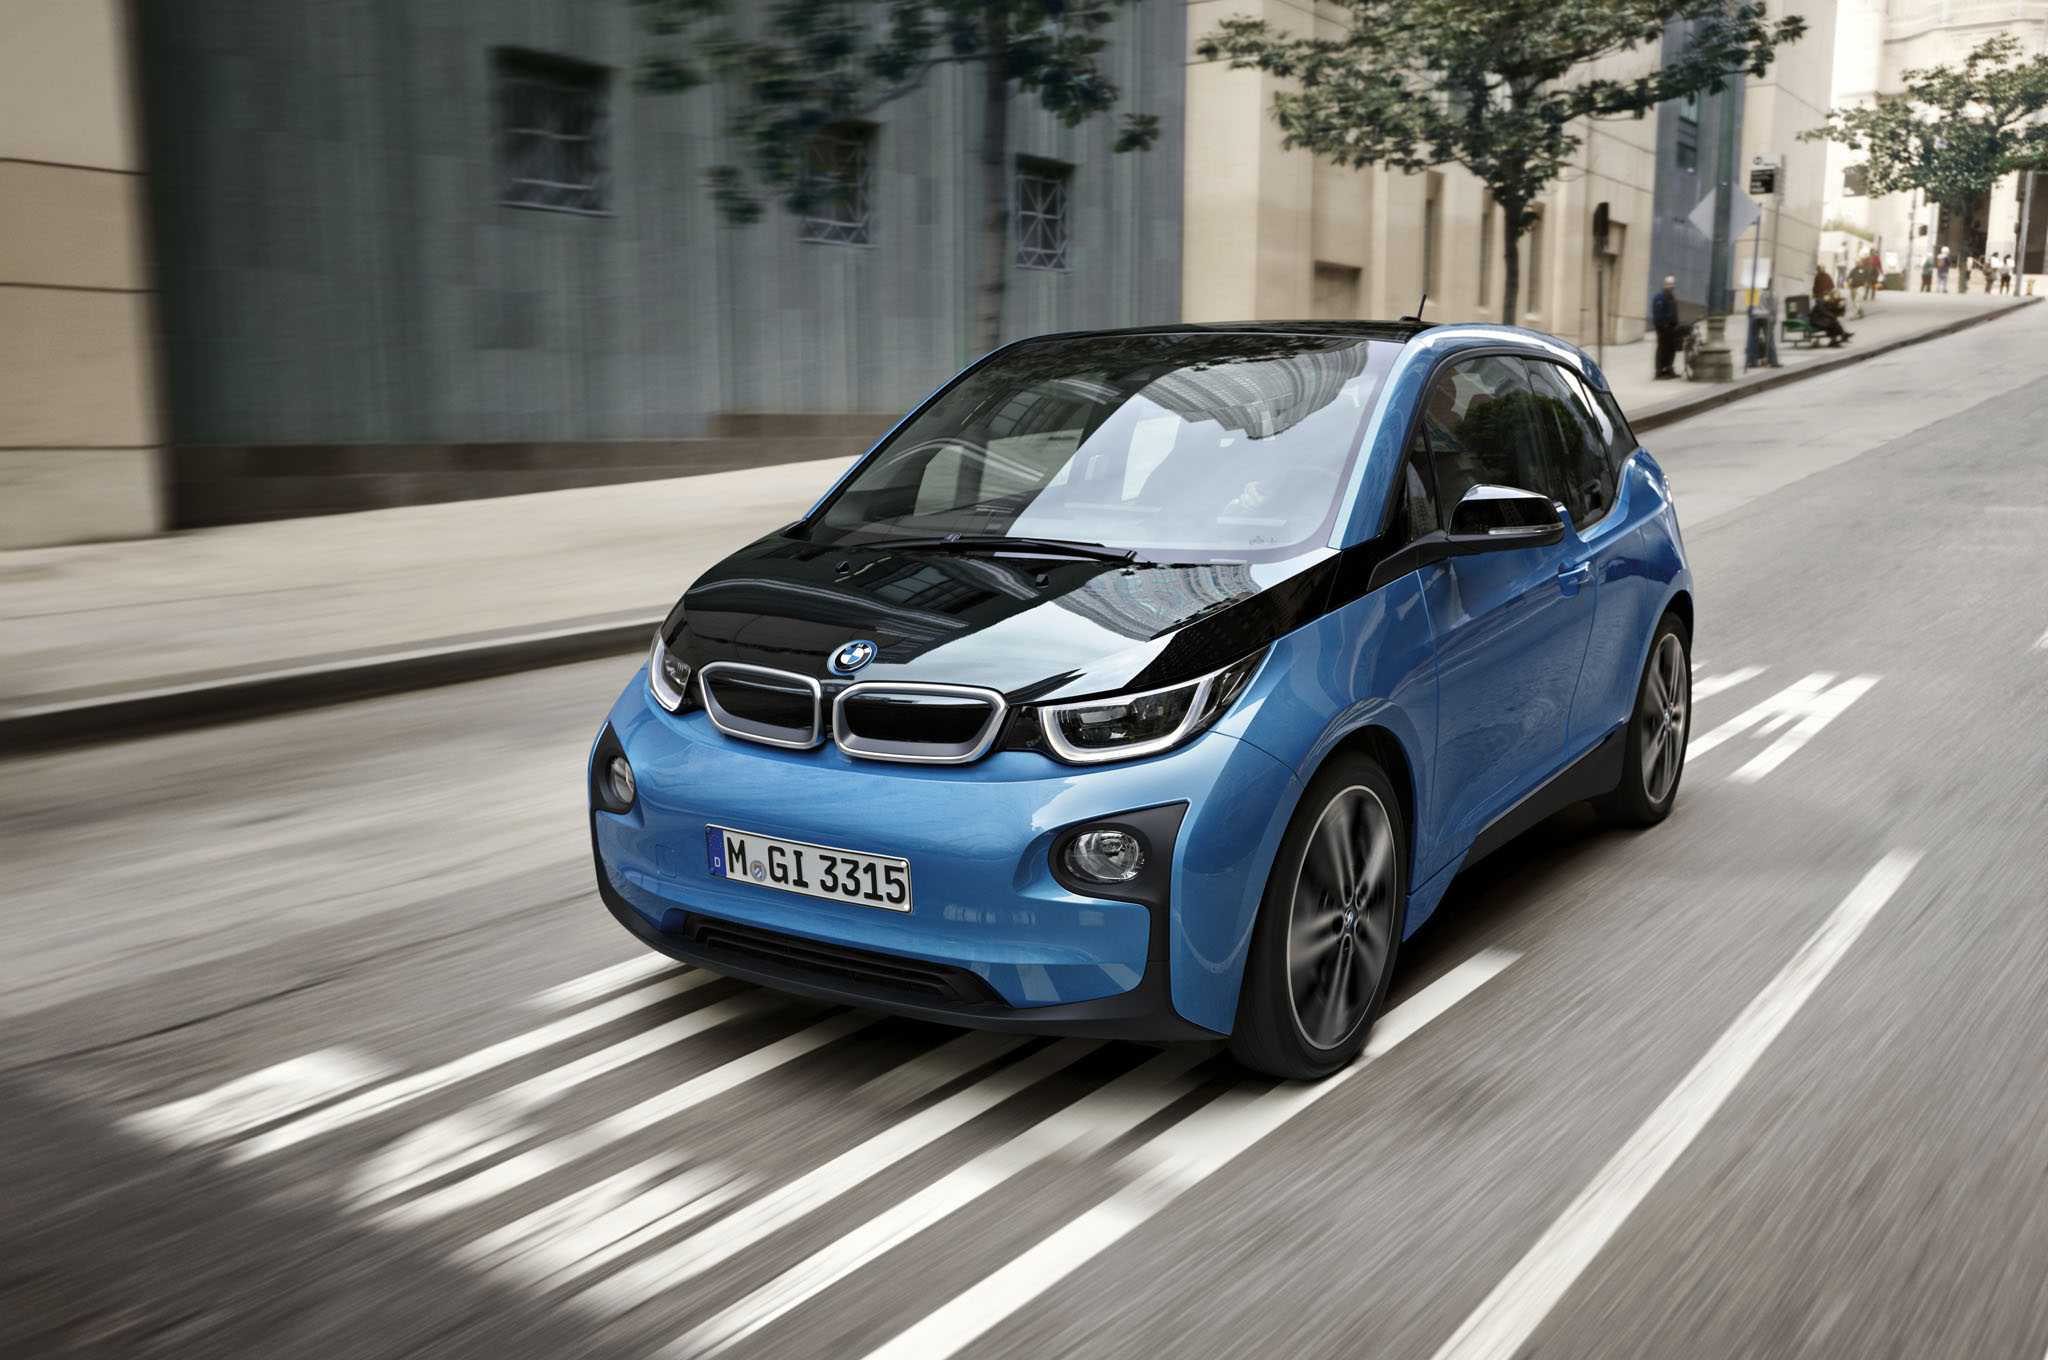 2017 BMW i3 Expected to Offer 114 Miles in a Compact Design